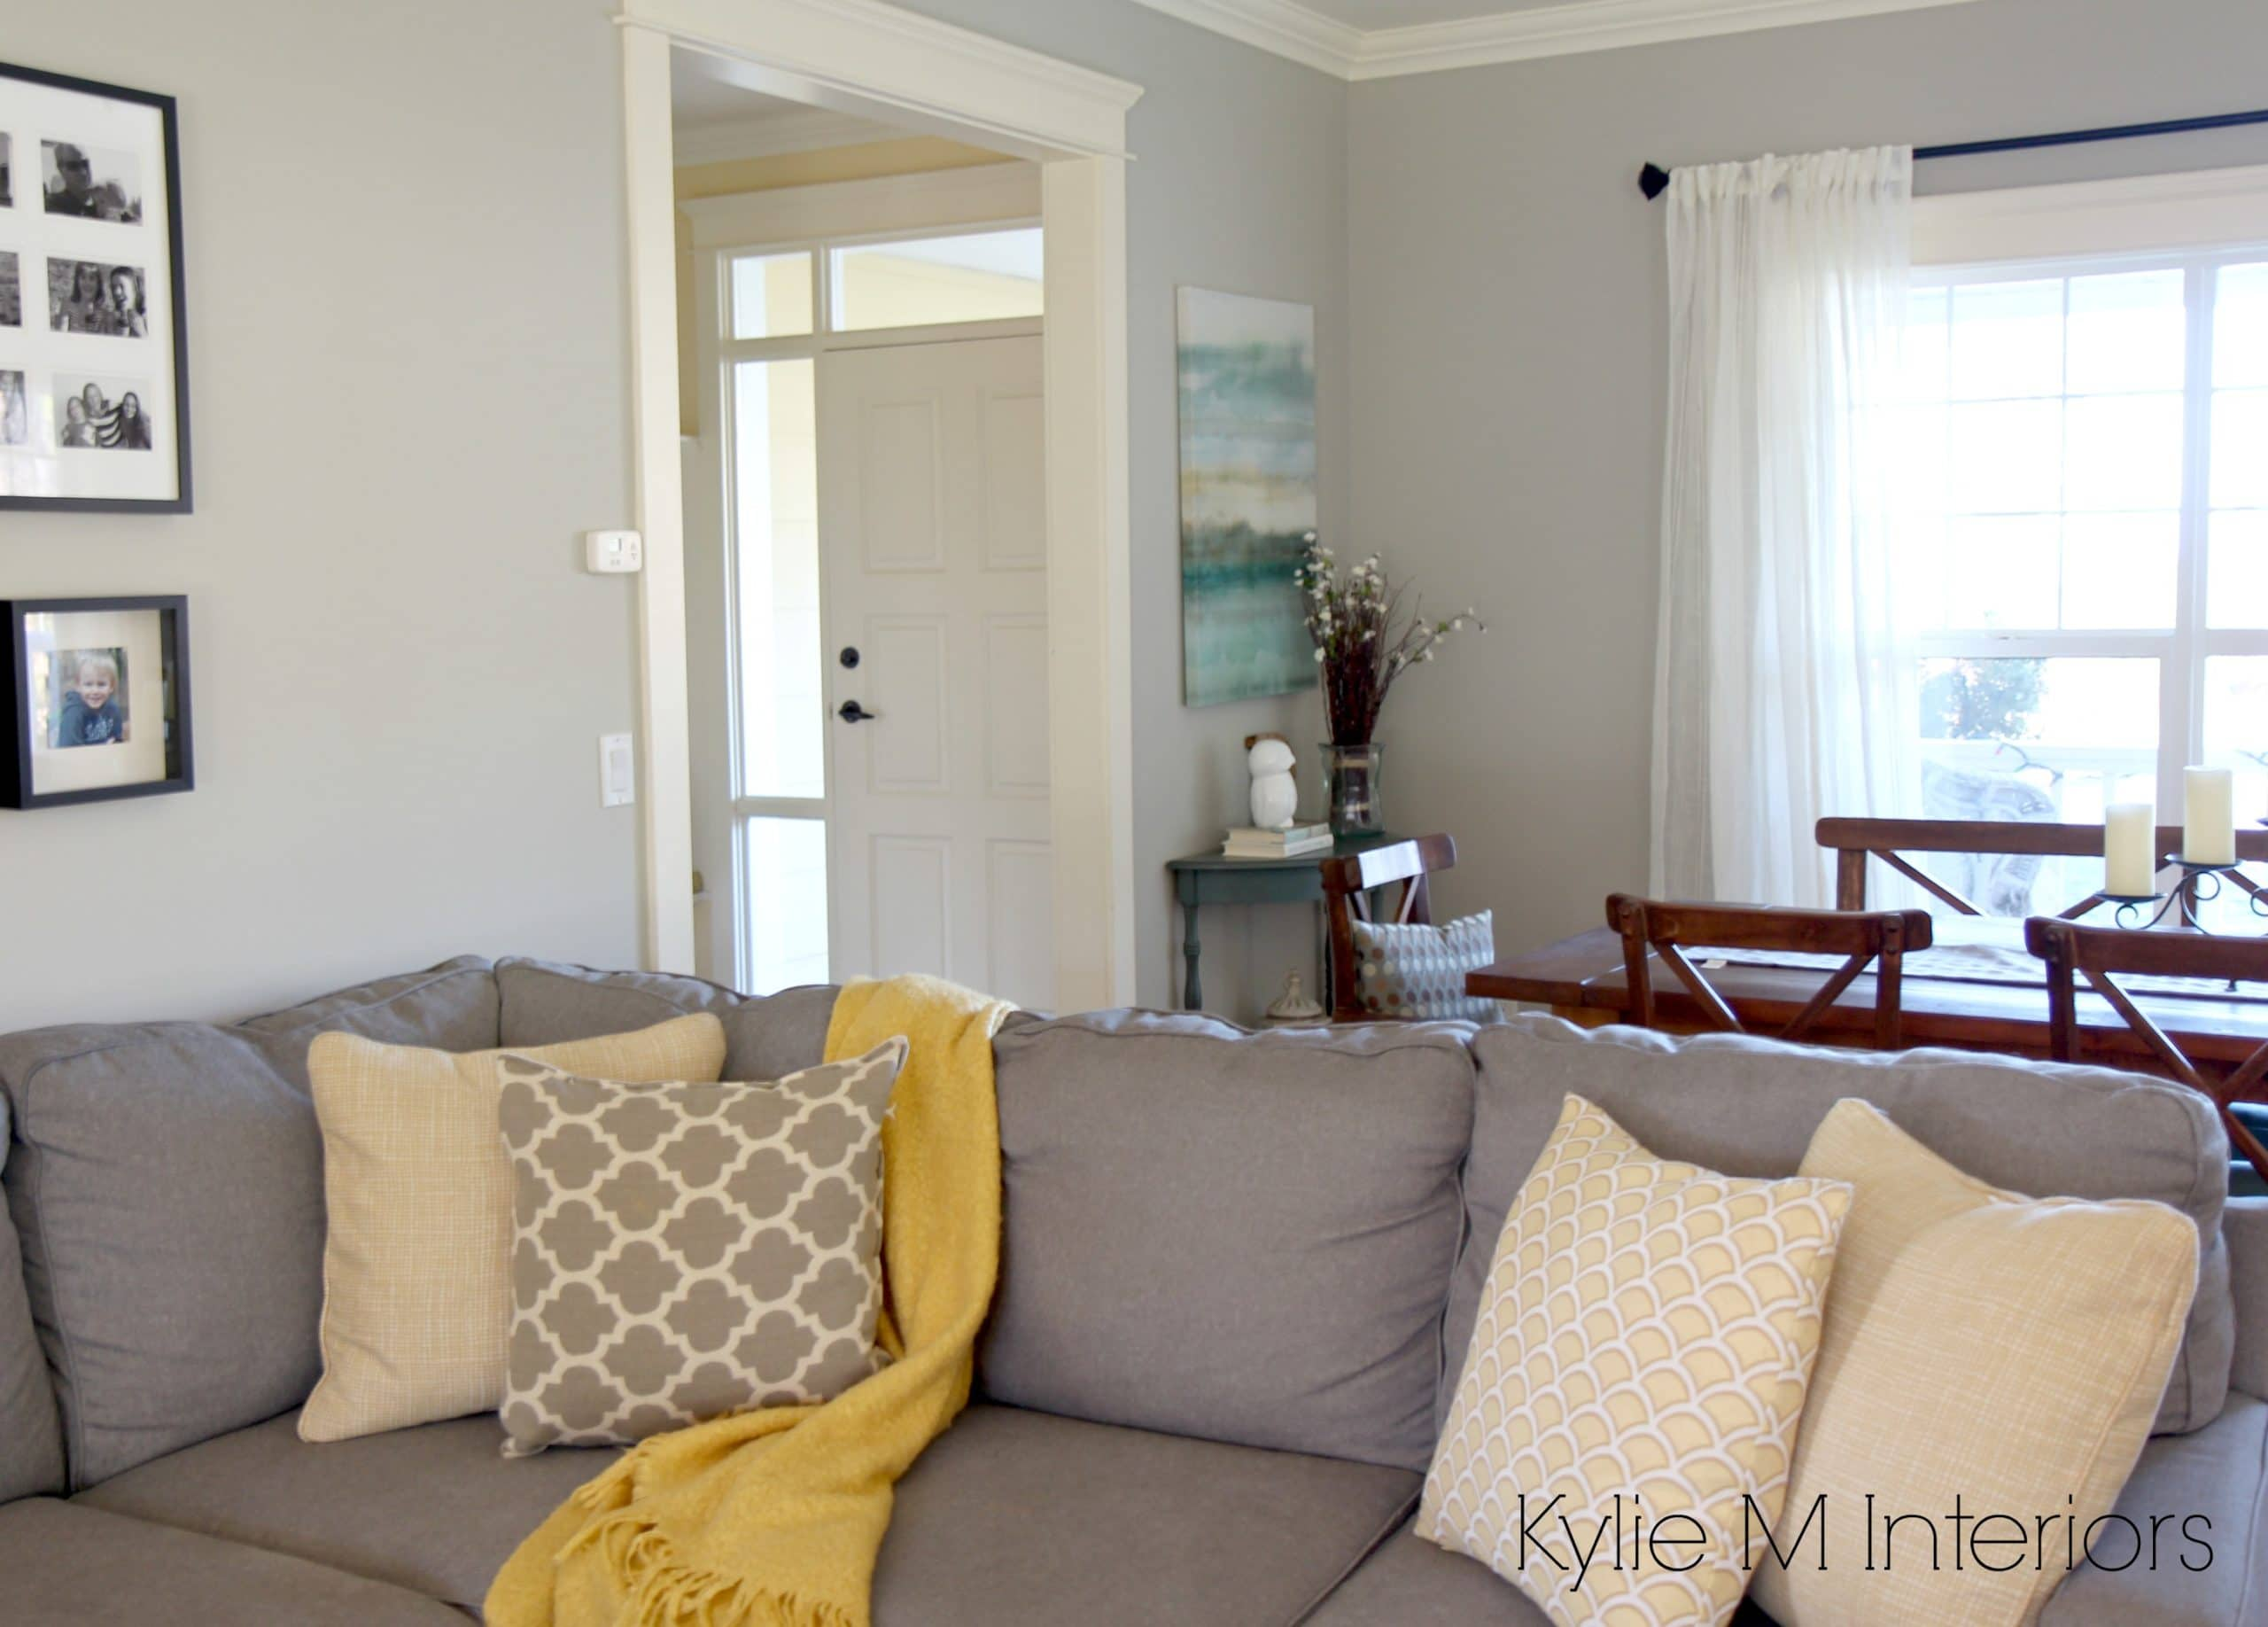 Benjamin Moore Revere Pewter With Cream Trim, Yellow And Gold And Teal  Accents And A Gray Sectional Couch In Living Room Part 51